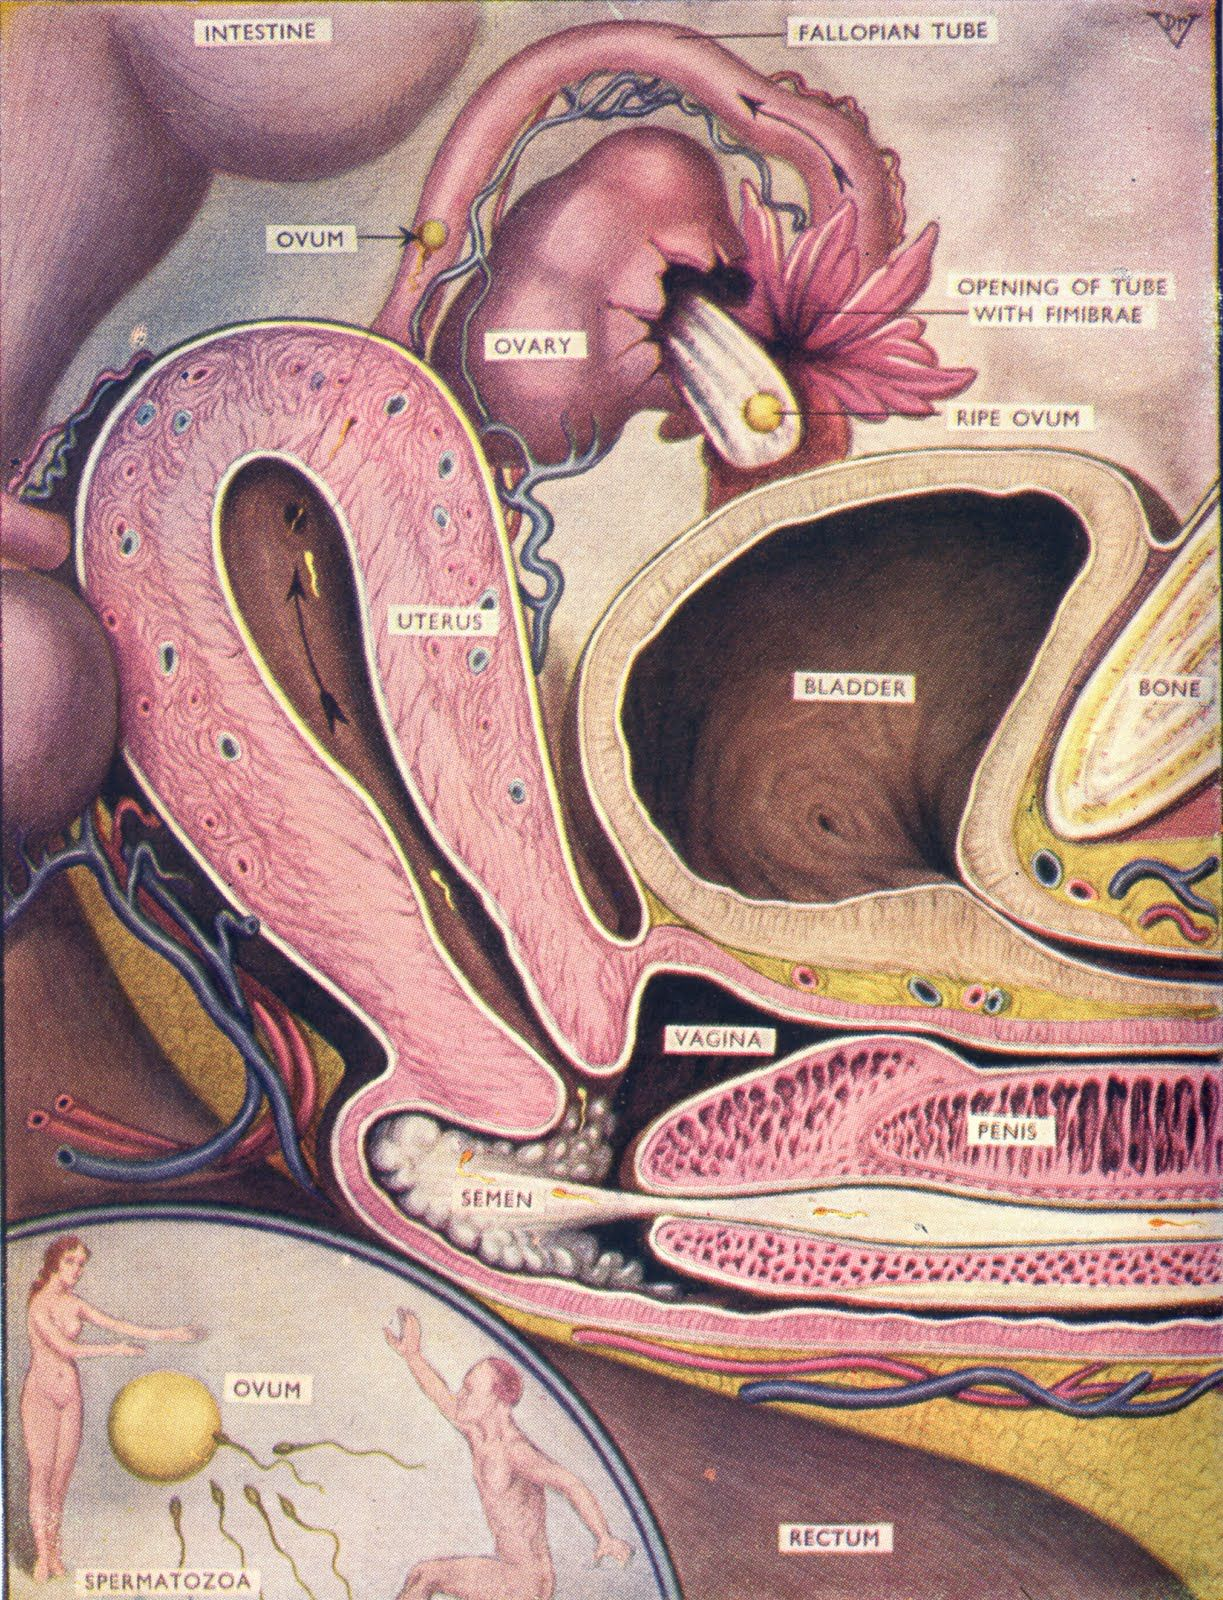 Conception | Fertility | Pinterest | Birth, Midwifery and Illustrations